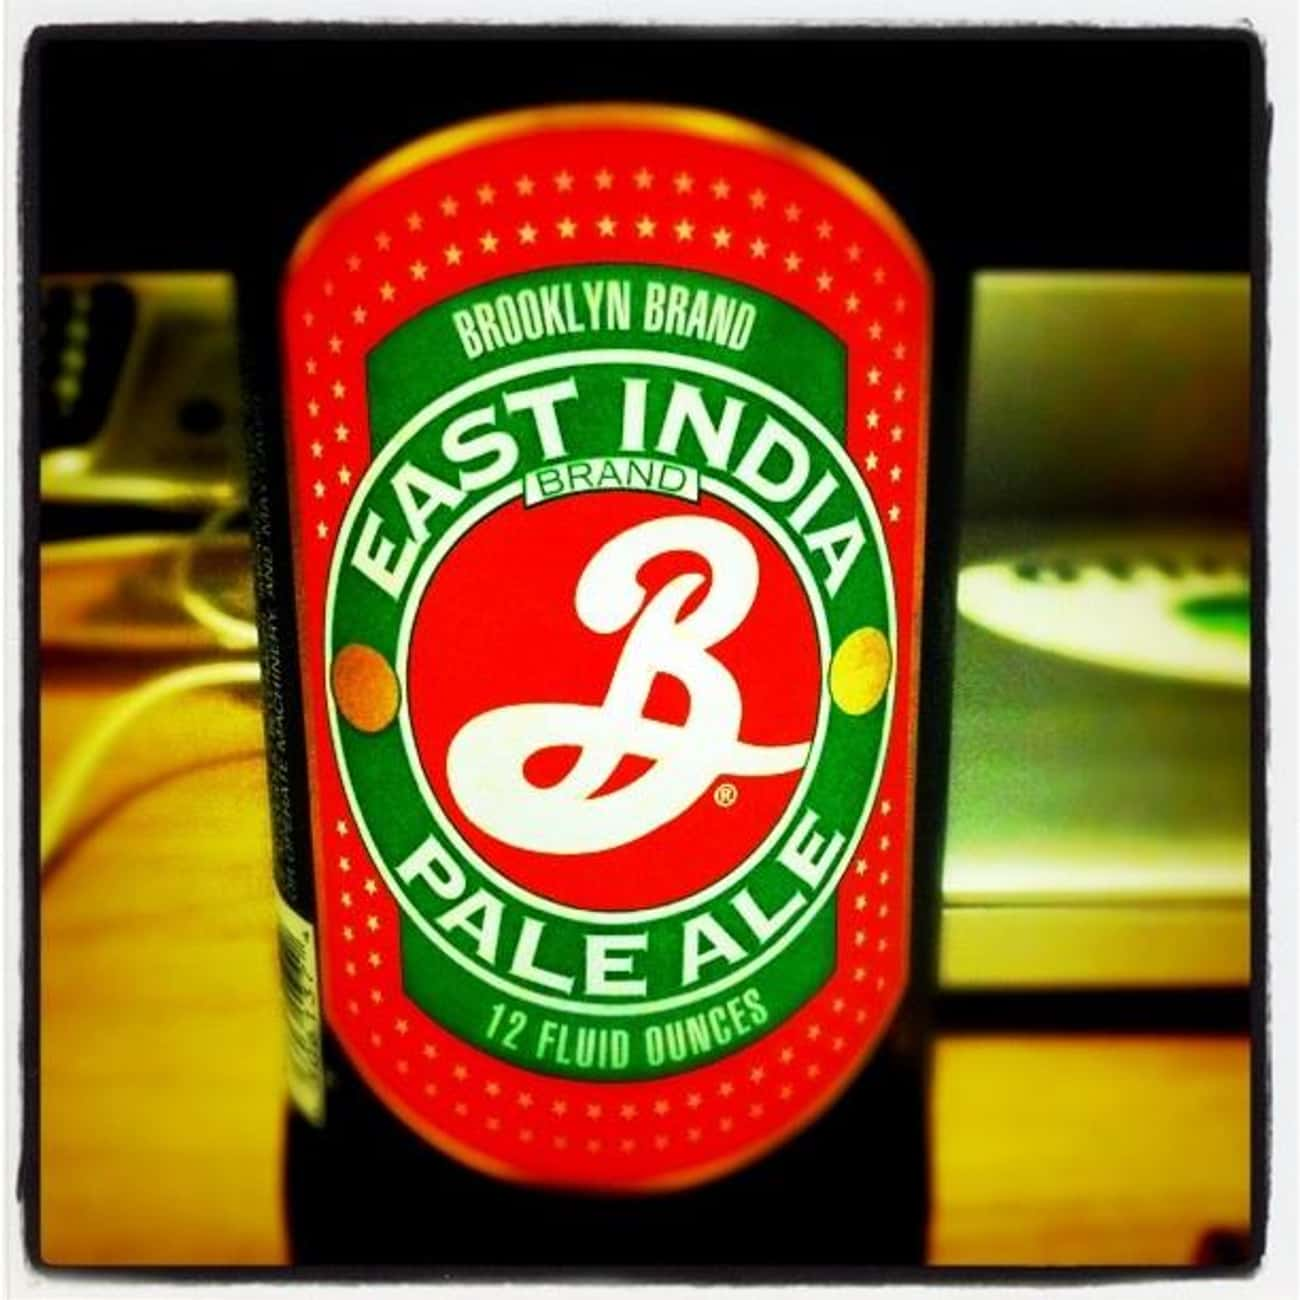 Brooklyn East India Pale Ale is listed (or ranked) 3 on the list Beers with 6.9 Percent Alcohol Content